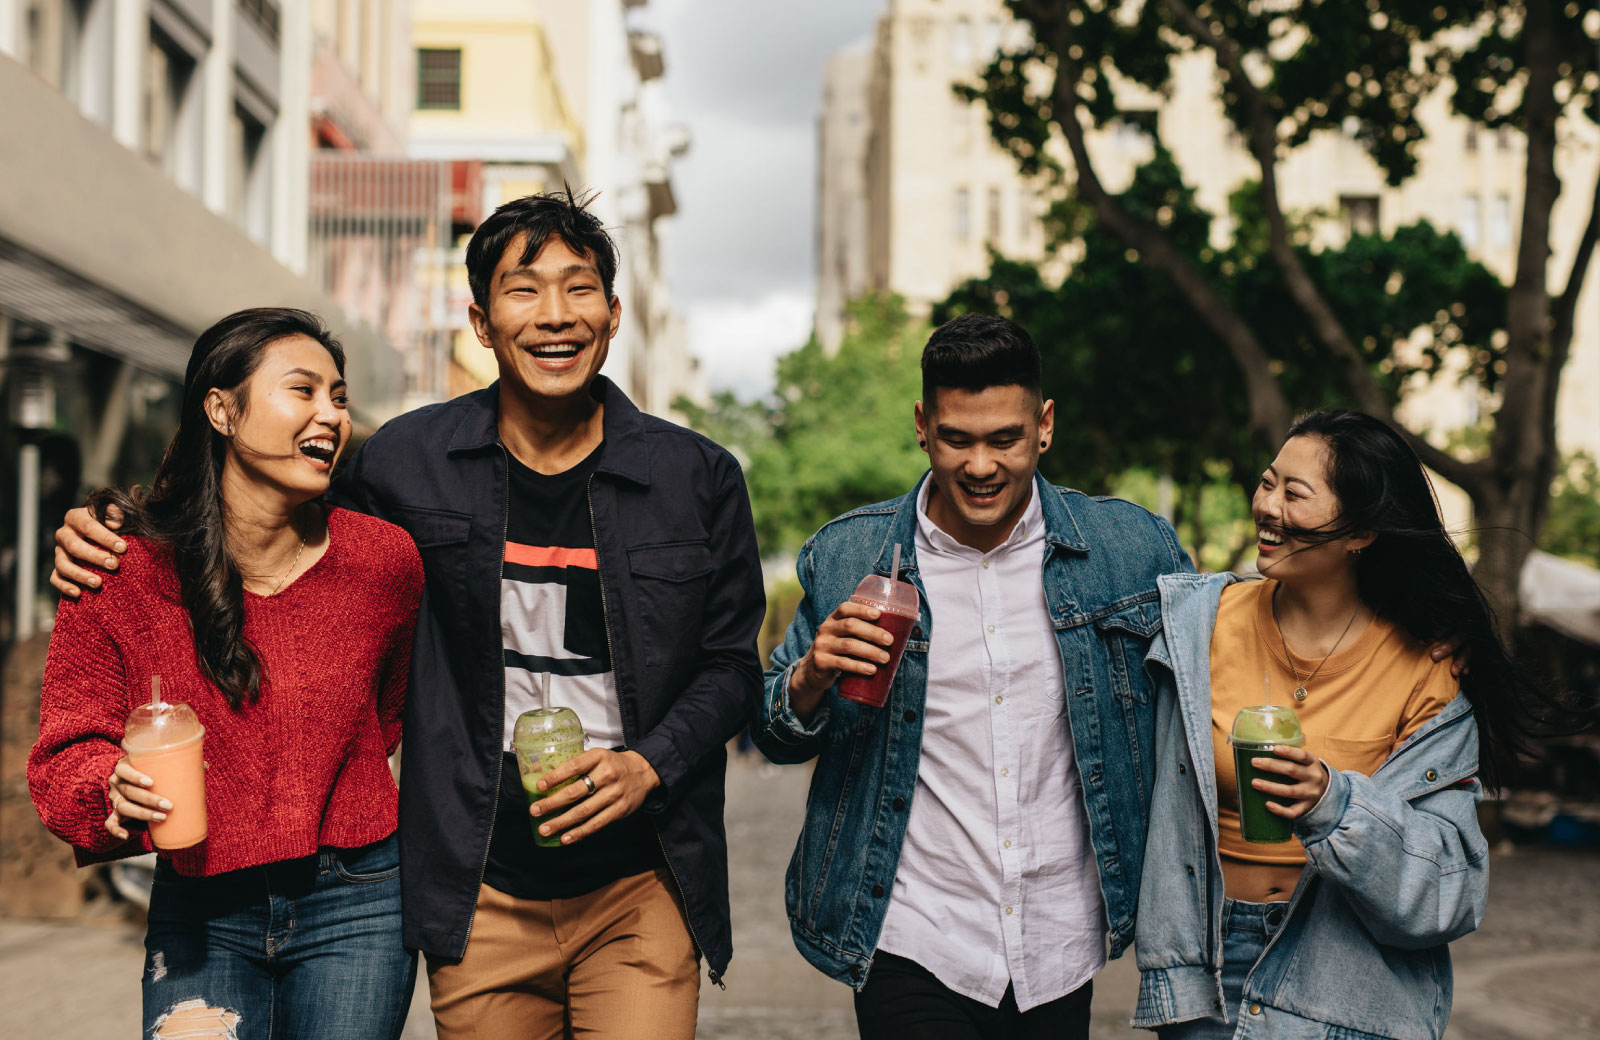 group of young Asians strolling with drinks in hand